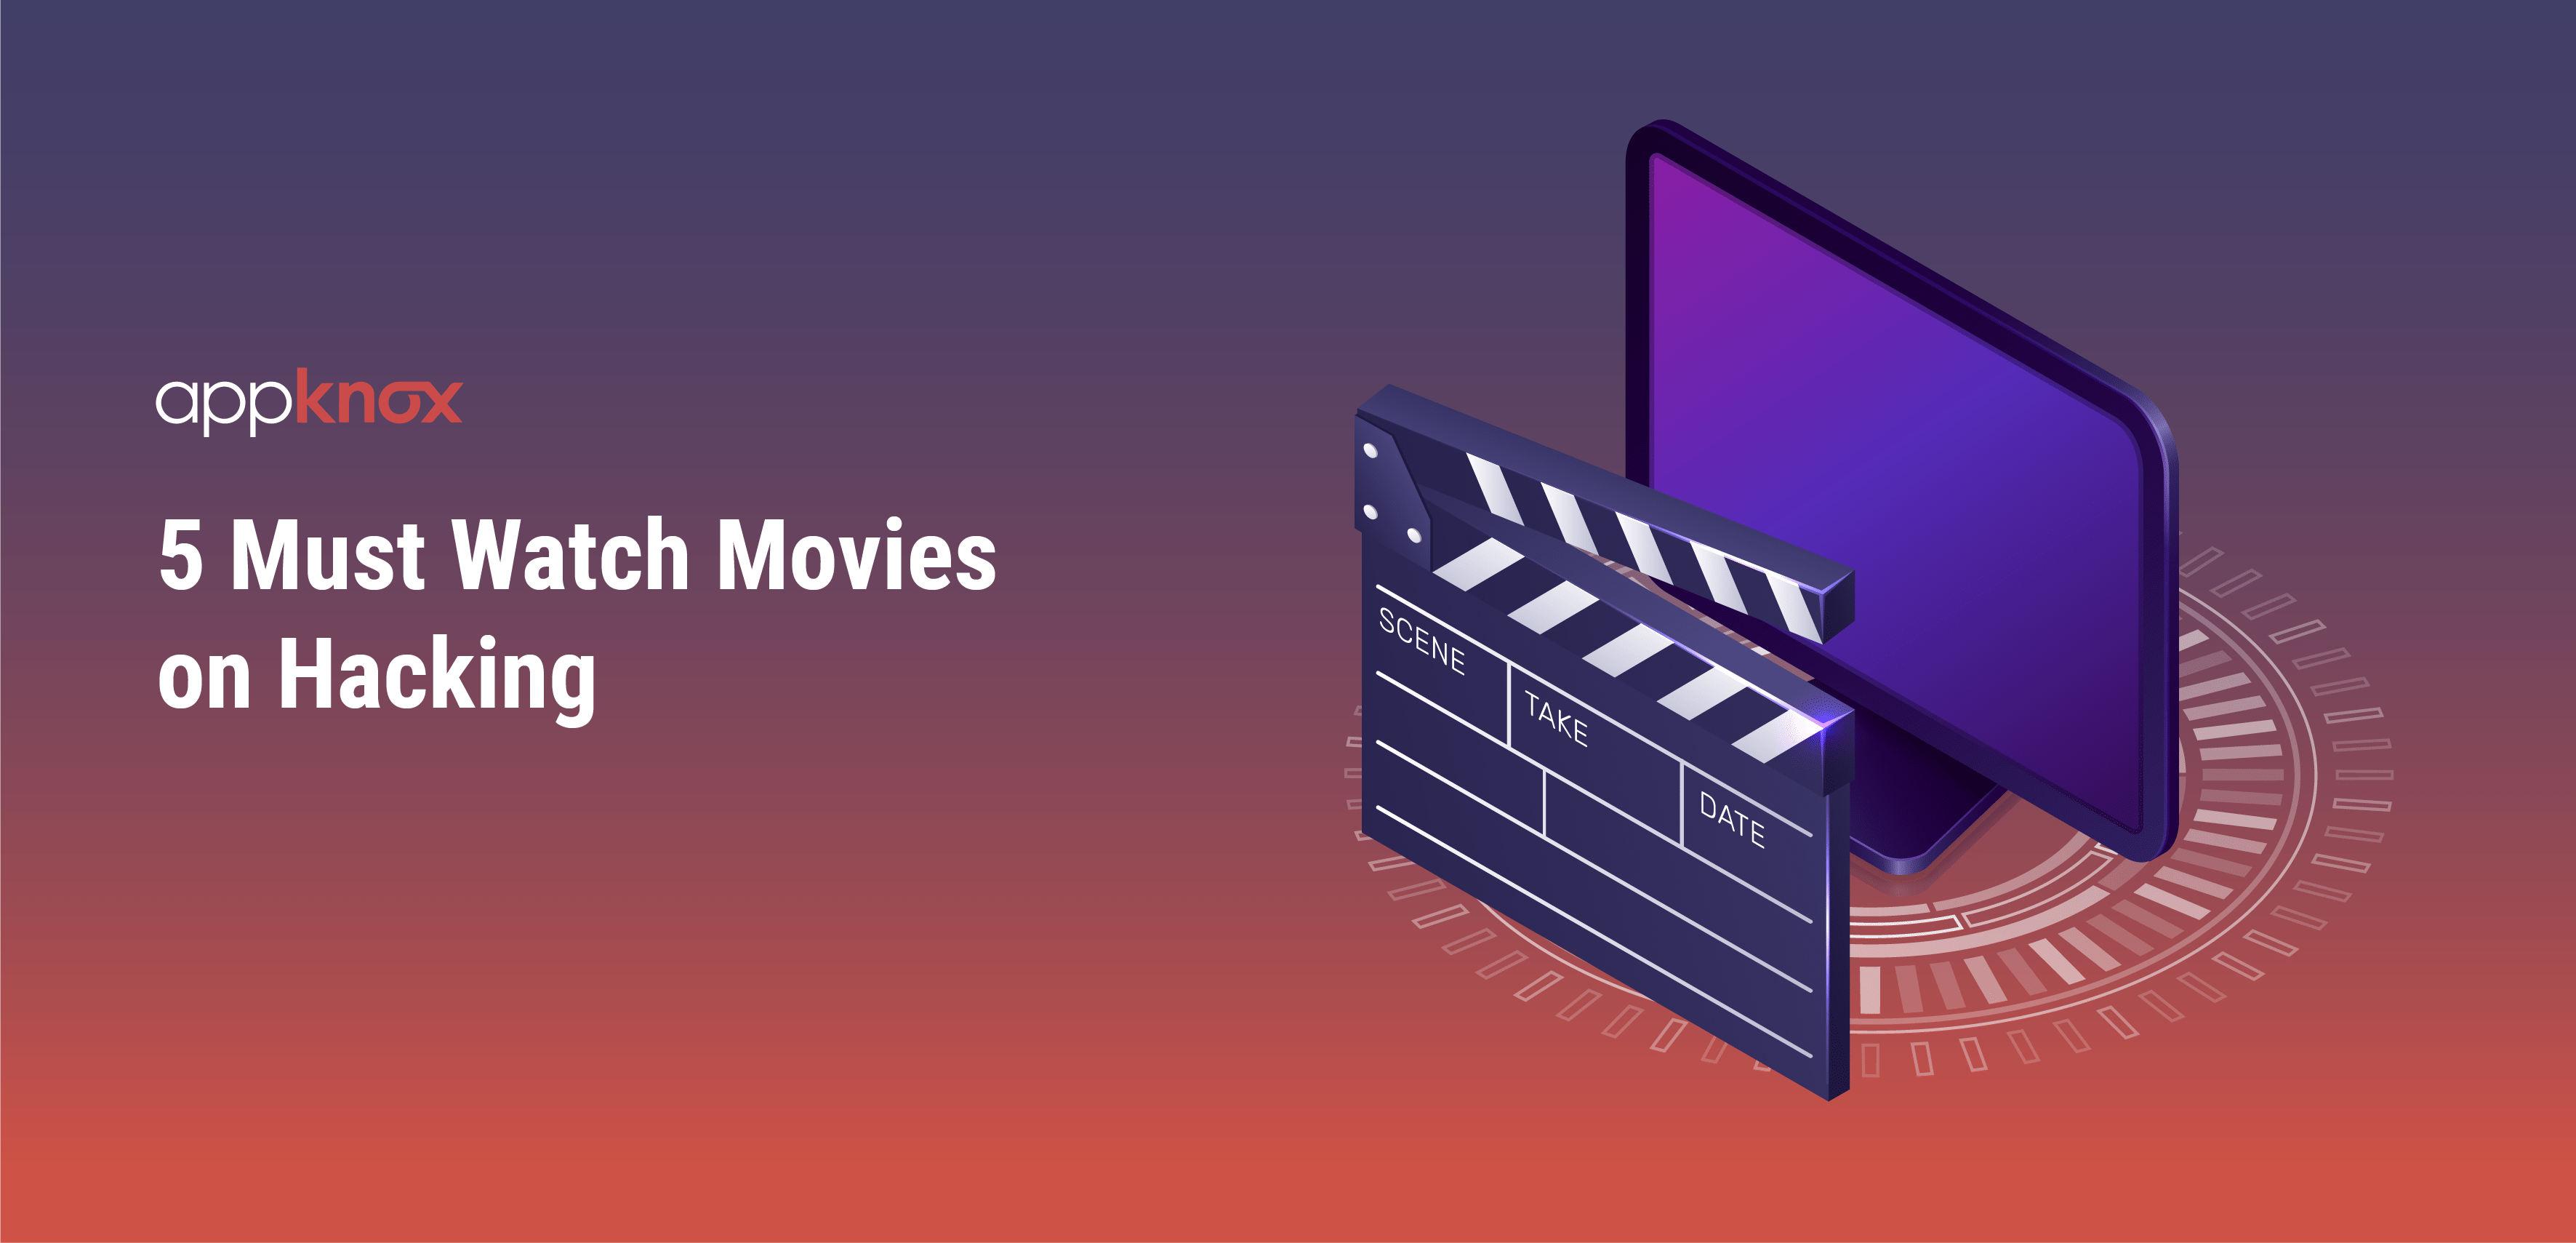 5 Must Watch Movies on Hacking